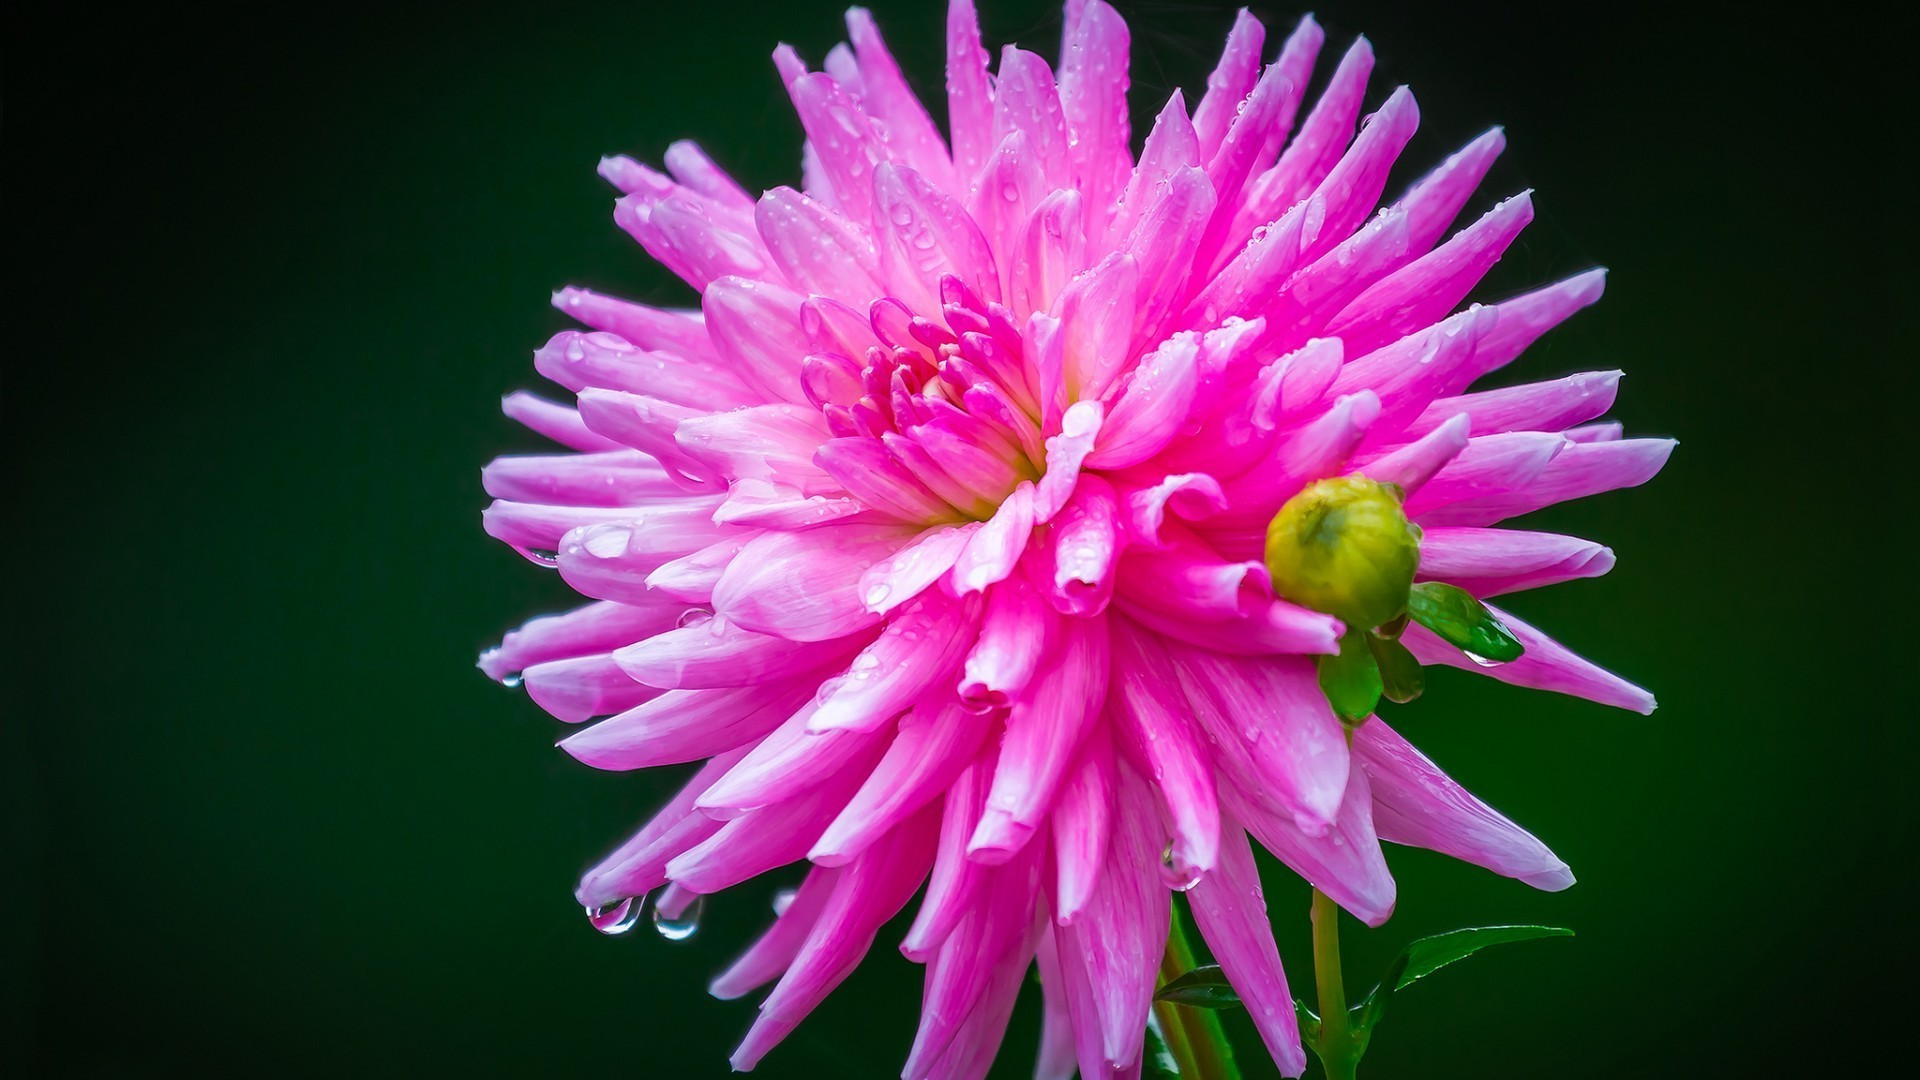 Pink Flower Iphone Wallpapers For Free